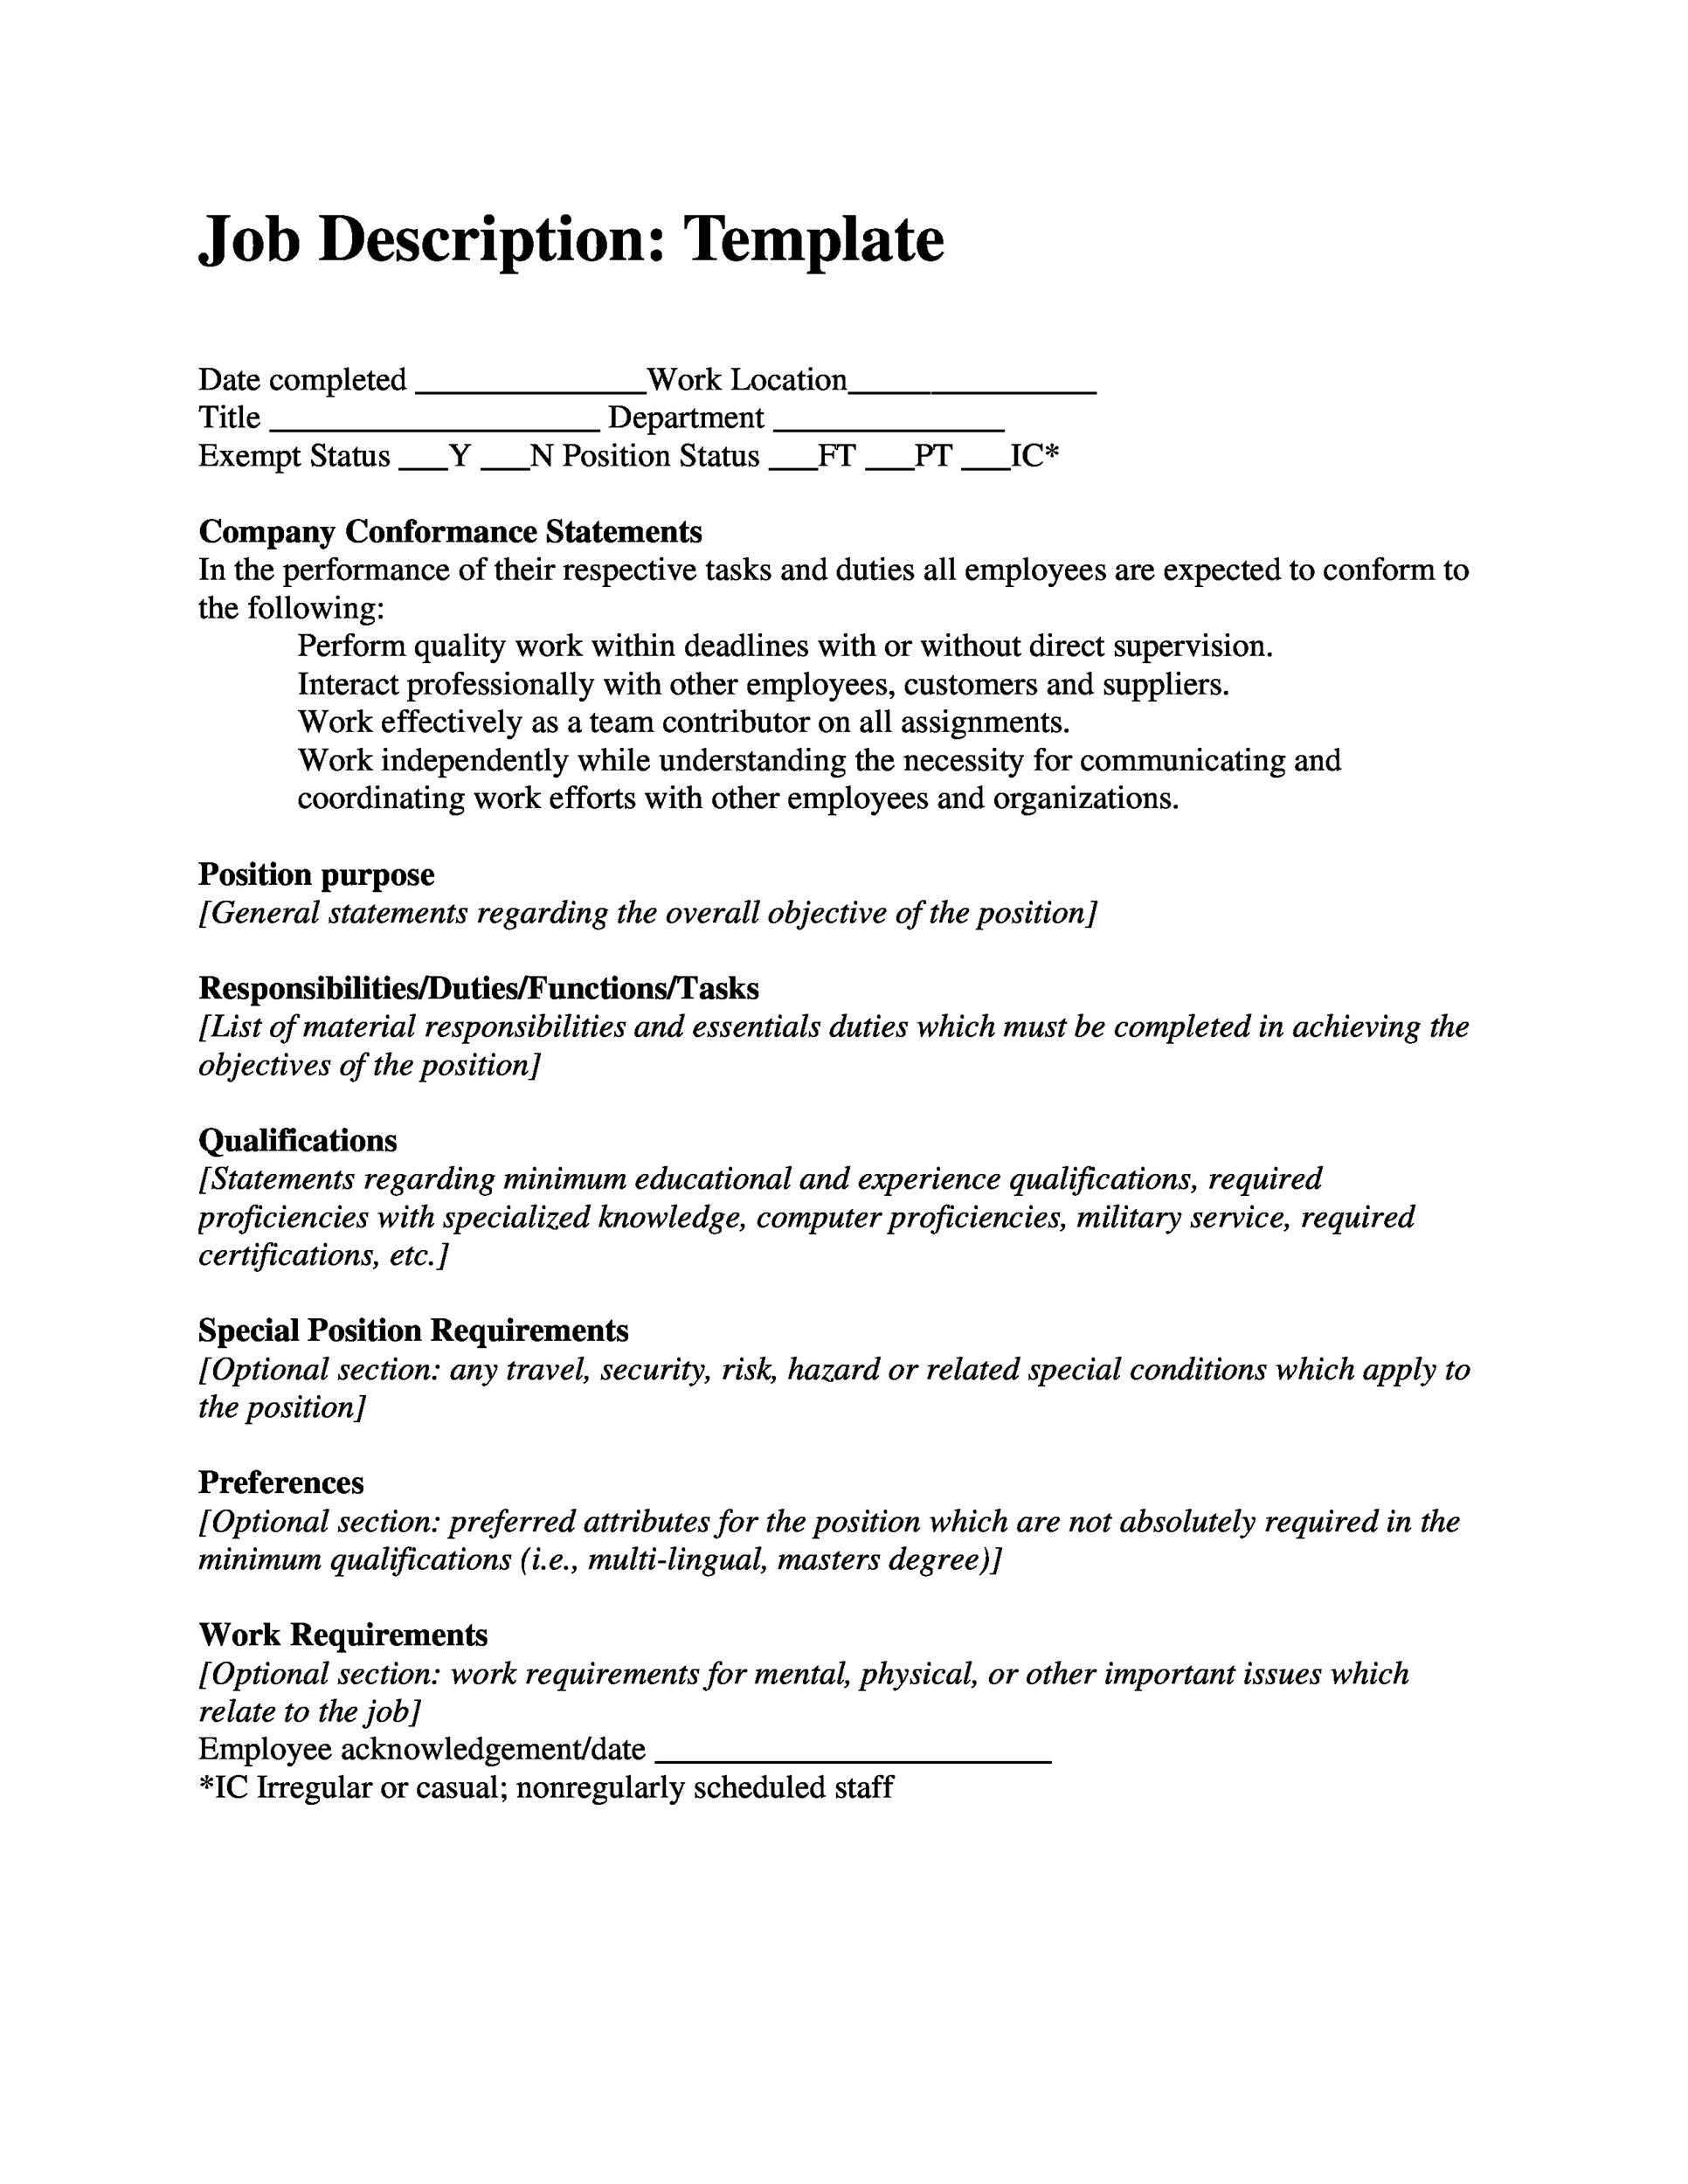 Free Job Description Template 44